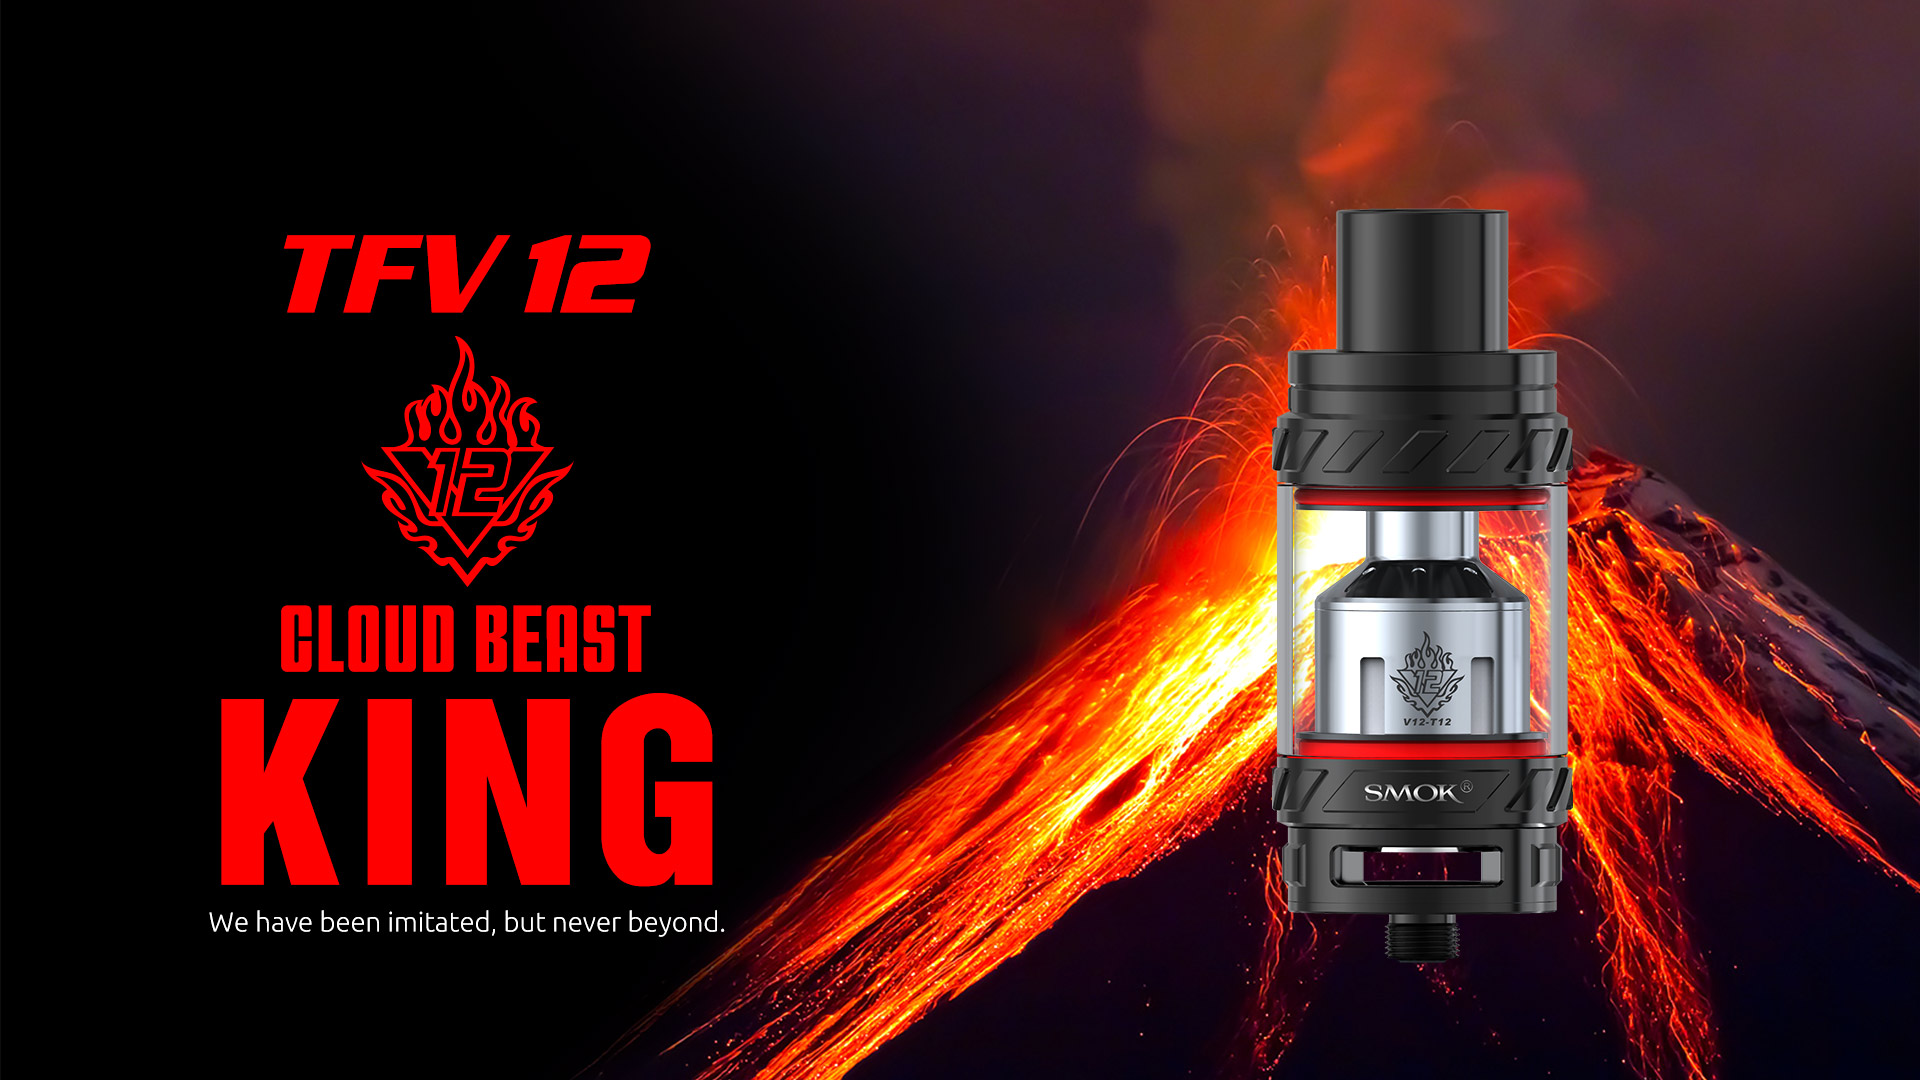 Tfv12 Smok 174 Innovation Keeps Changing The Vaping Experience